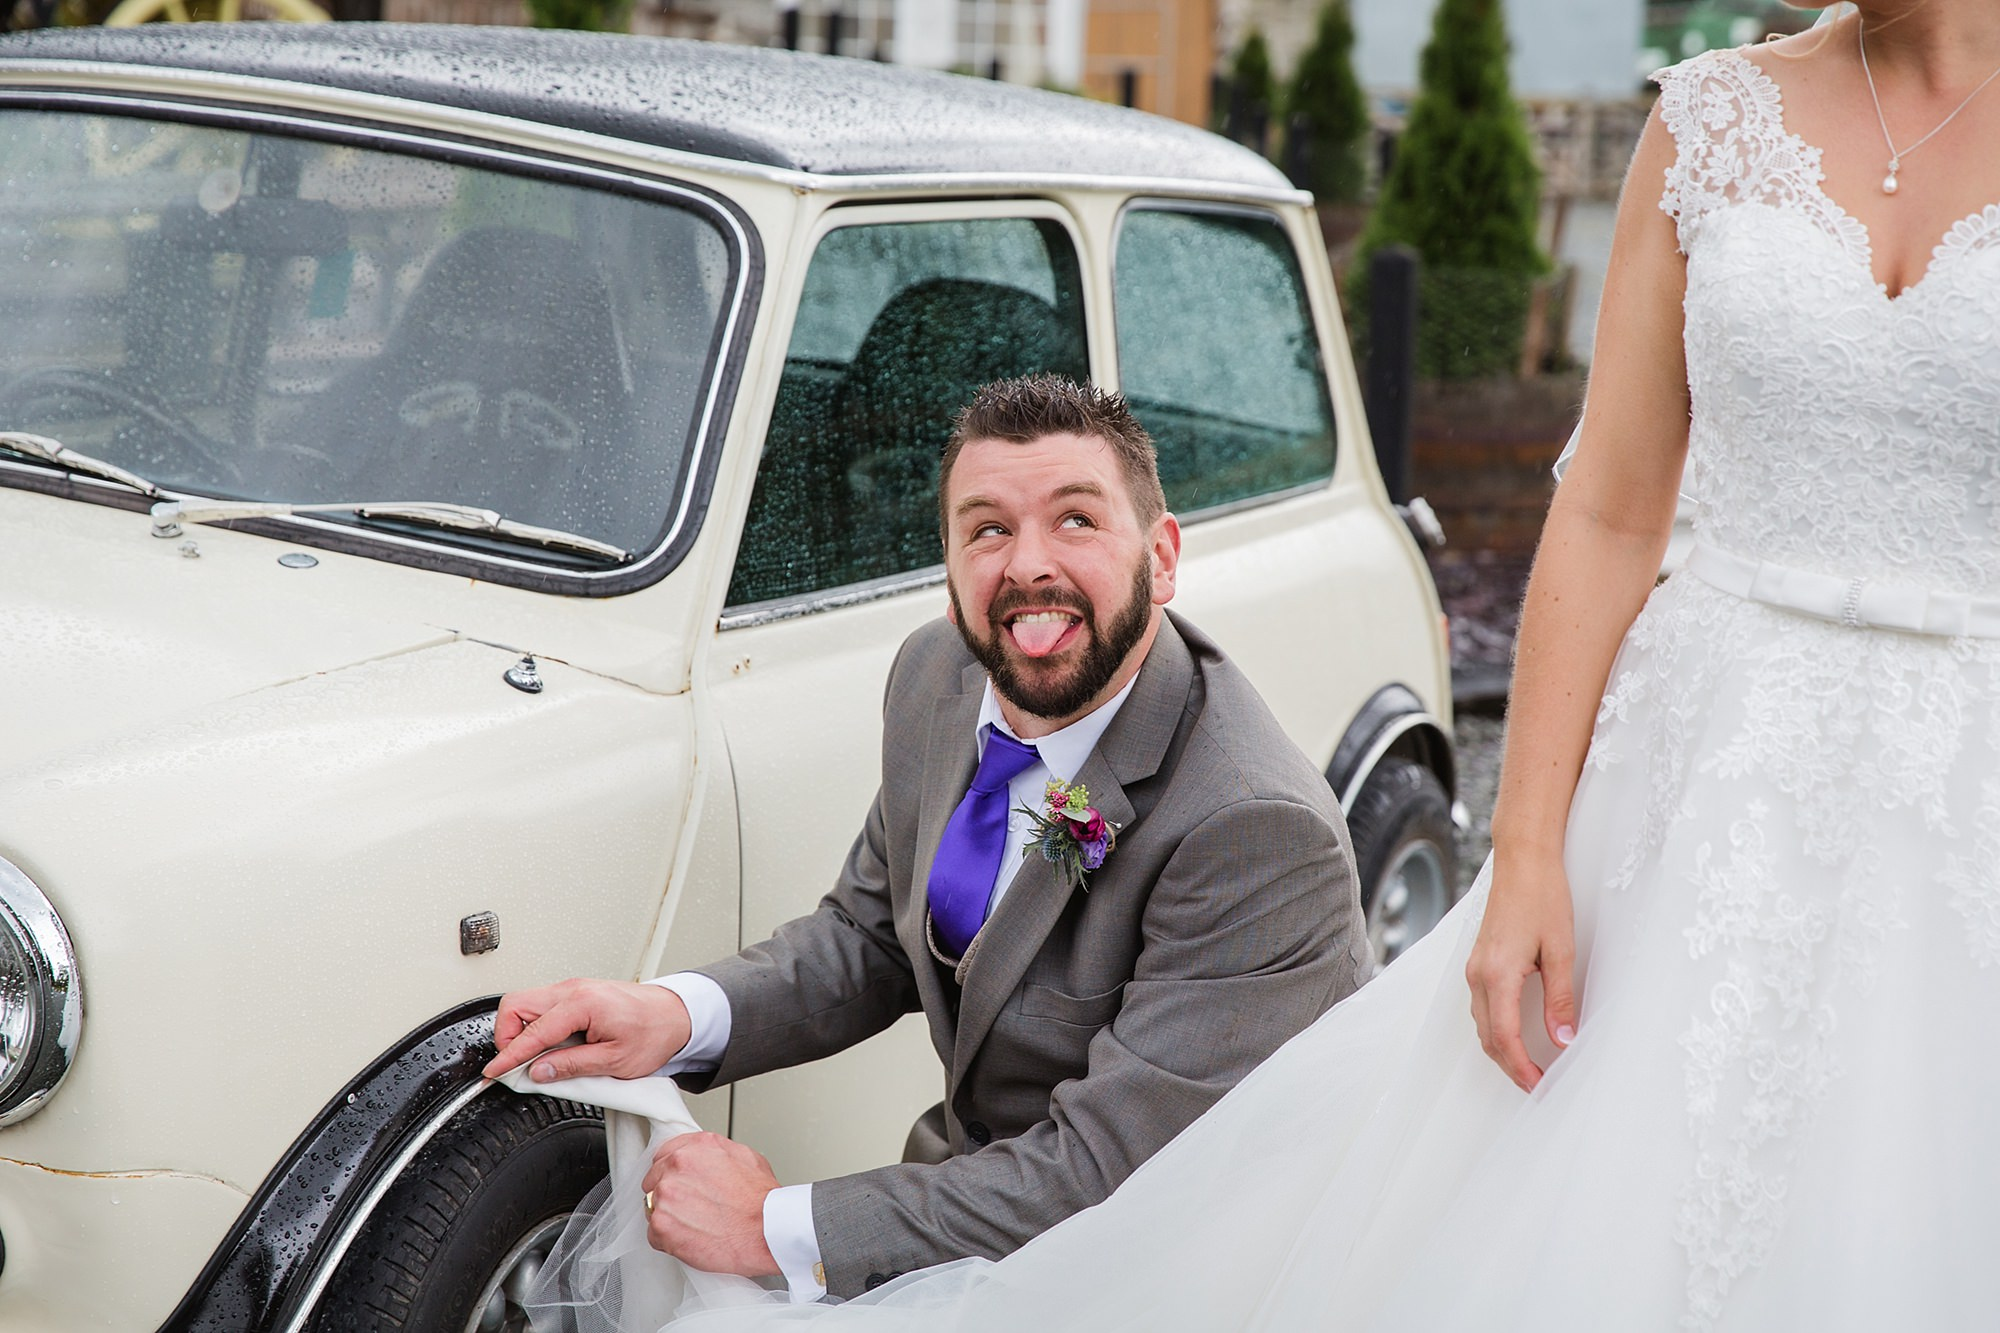 A fun wedding portrait of groom pretending to clean his car with bride's wedding dress